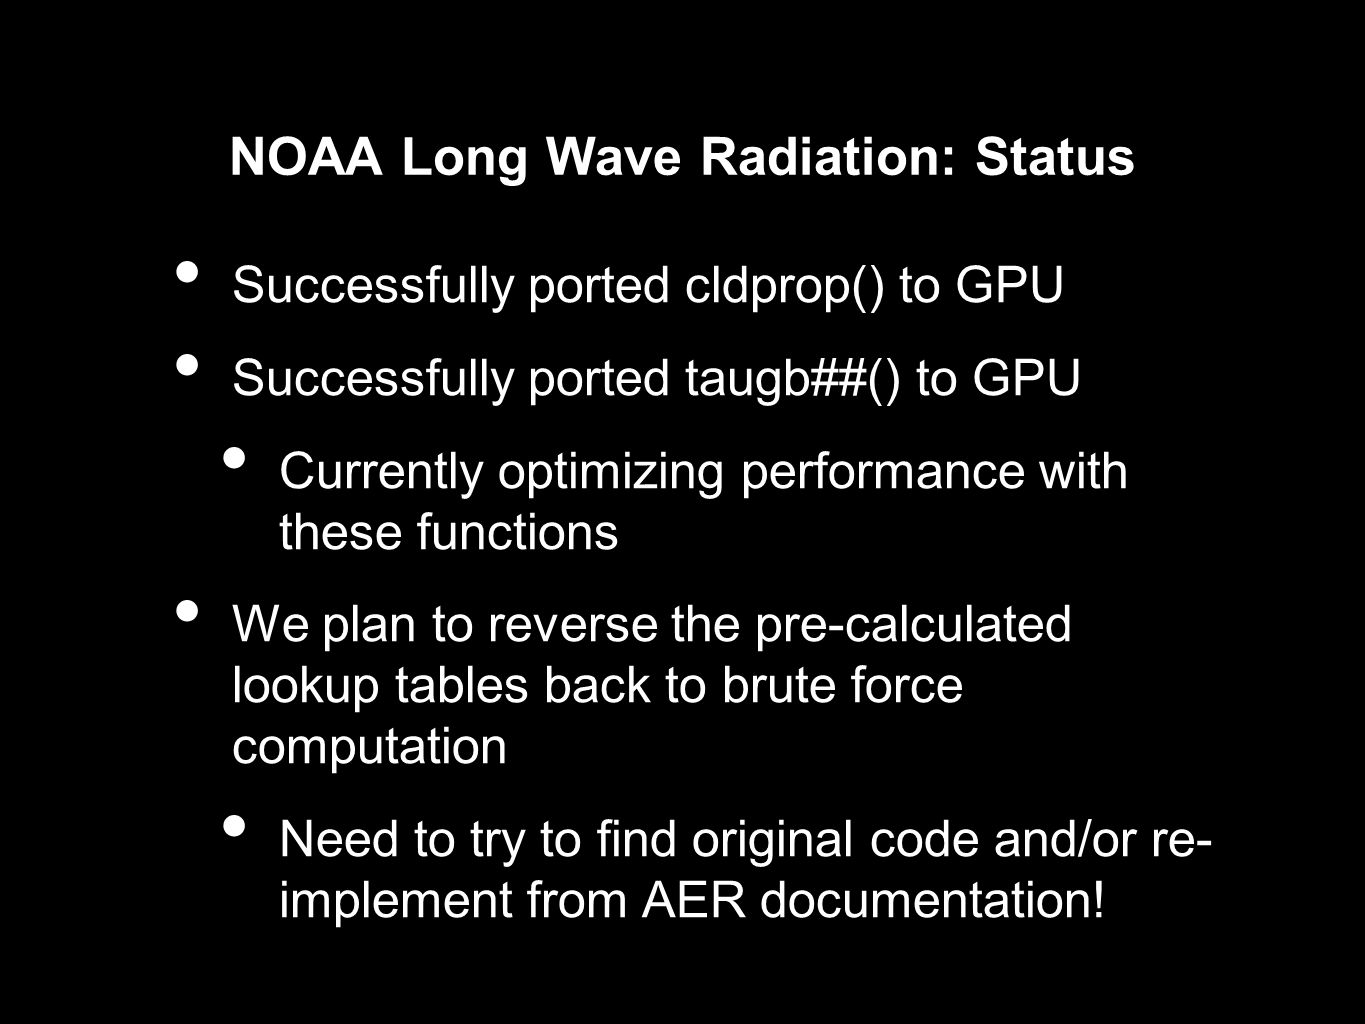 NOAA Long Wave Radiation: Status Successfully ported cldprop() to GPU Successfully ported taugb##() to GPU Currently optimizing performance with these functions We plan to reverse the pre-calculated lookup tables back to brute force computation Need to try to find original code and/or re- implement from AER documentation!